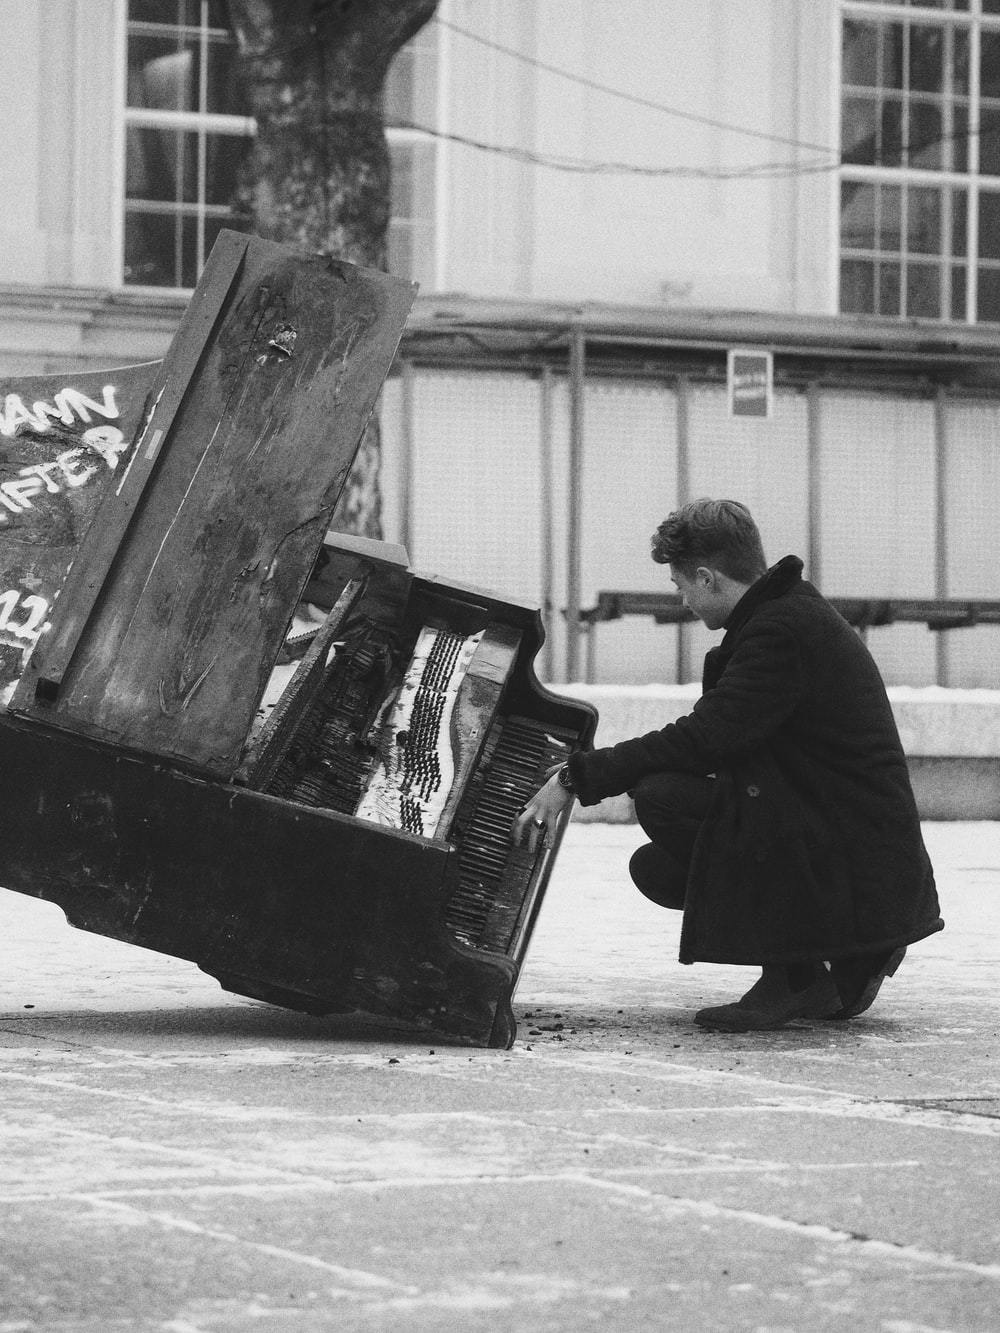 grayscale photography of man crouching in front of damaged piano